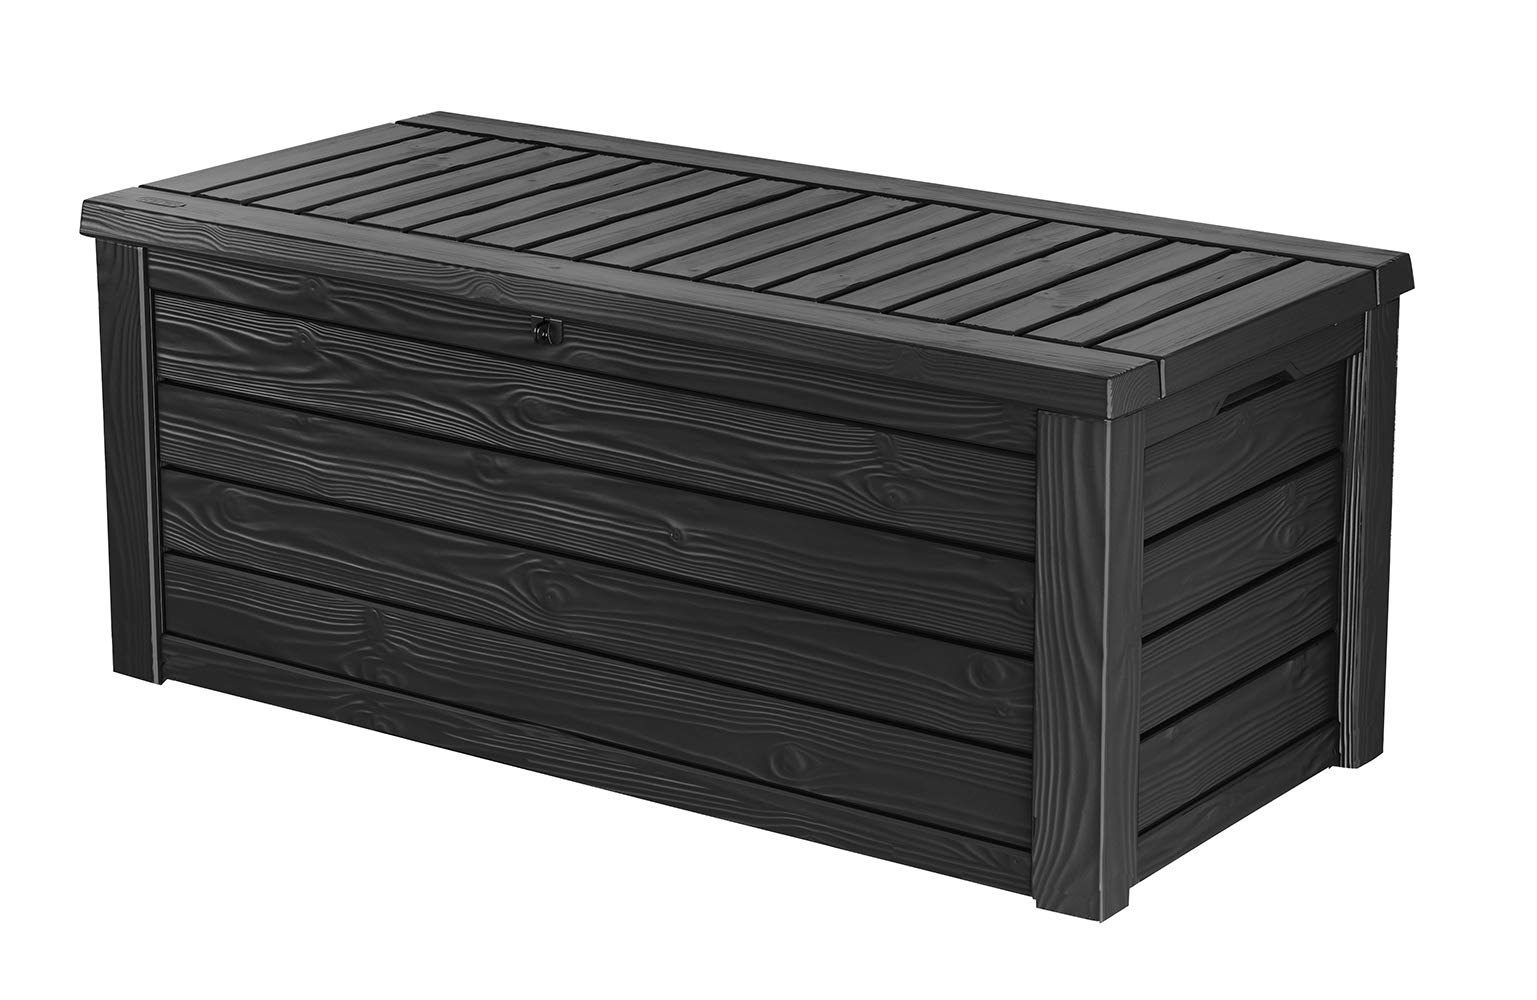 Keter Westwood 150 Gallon Resin Outdoor Storage Deck Box for Patio Garden Furniture, Grey by Keter